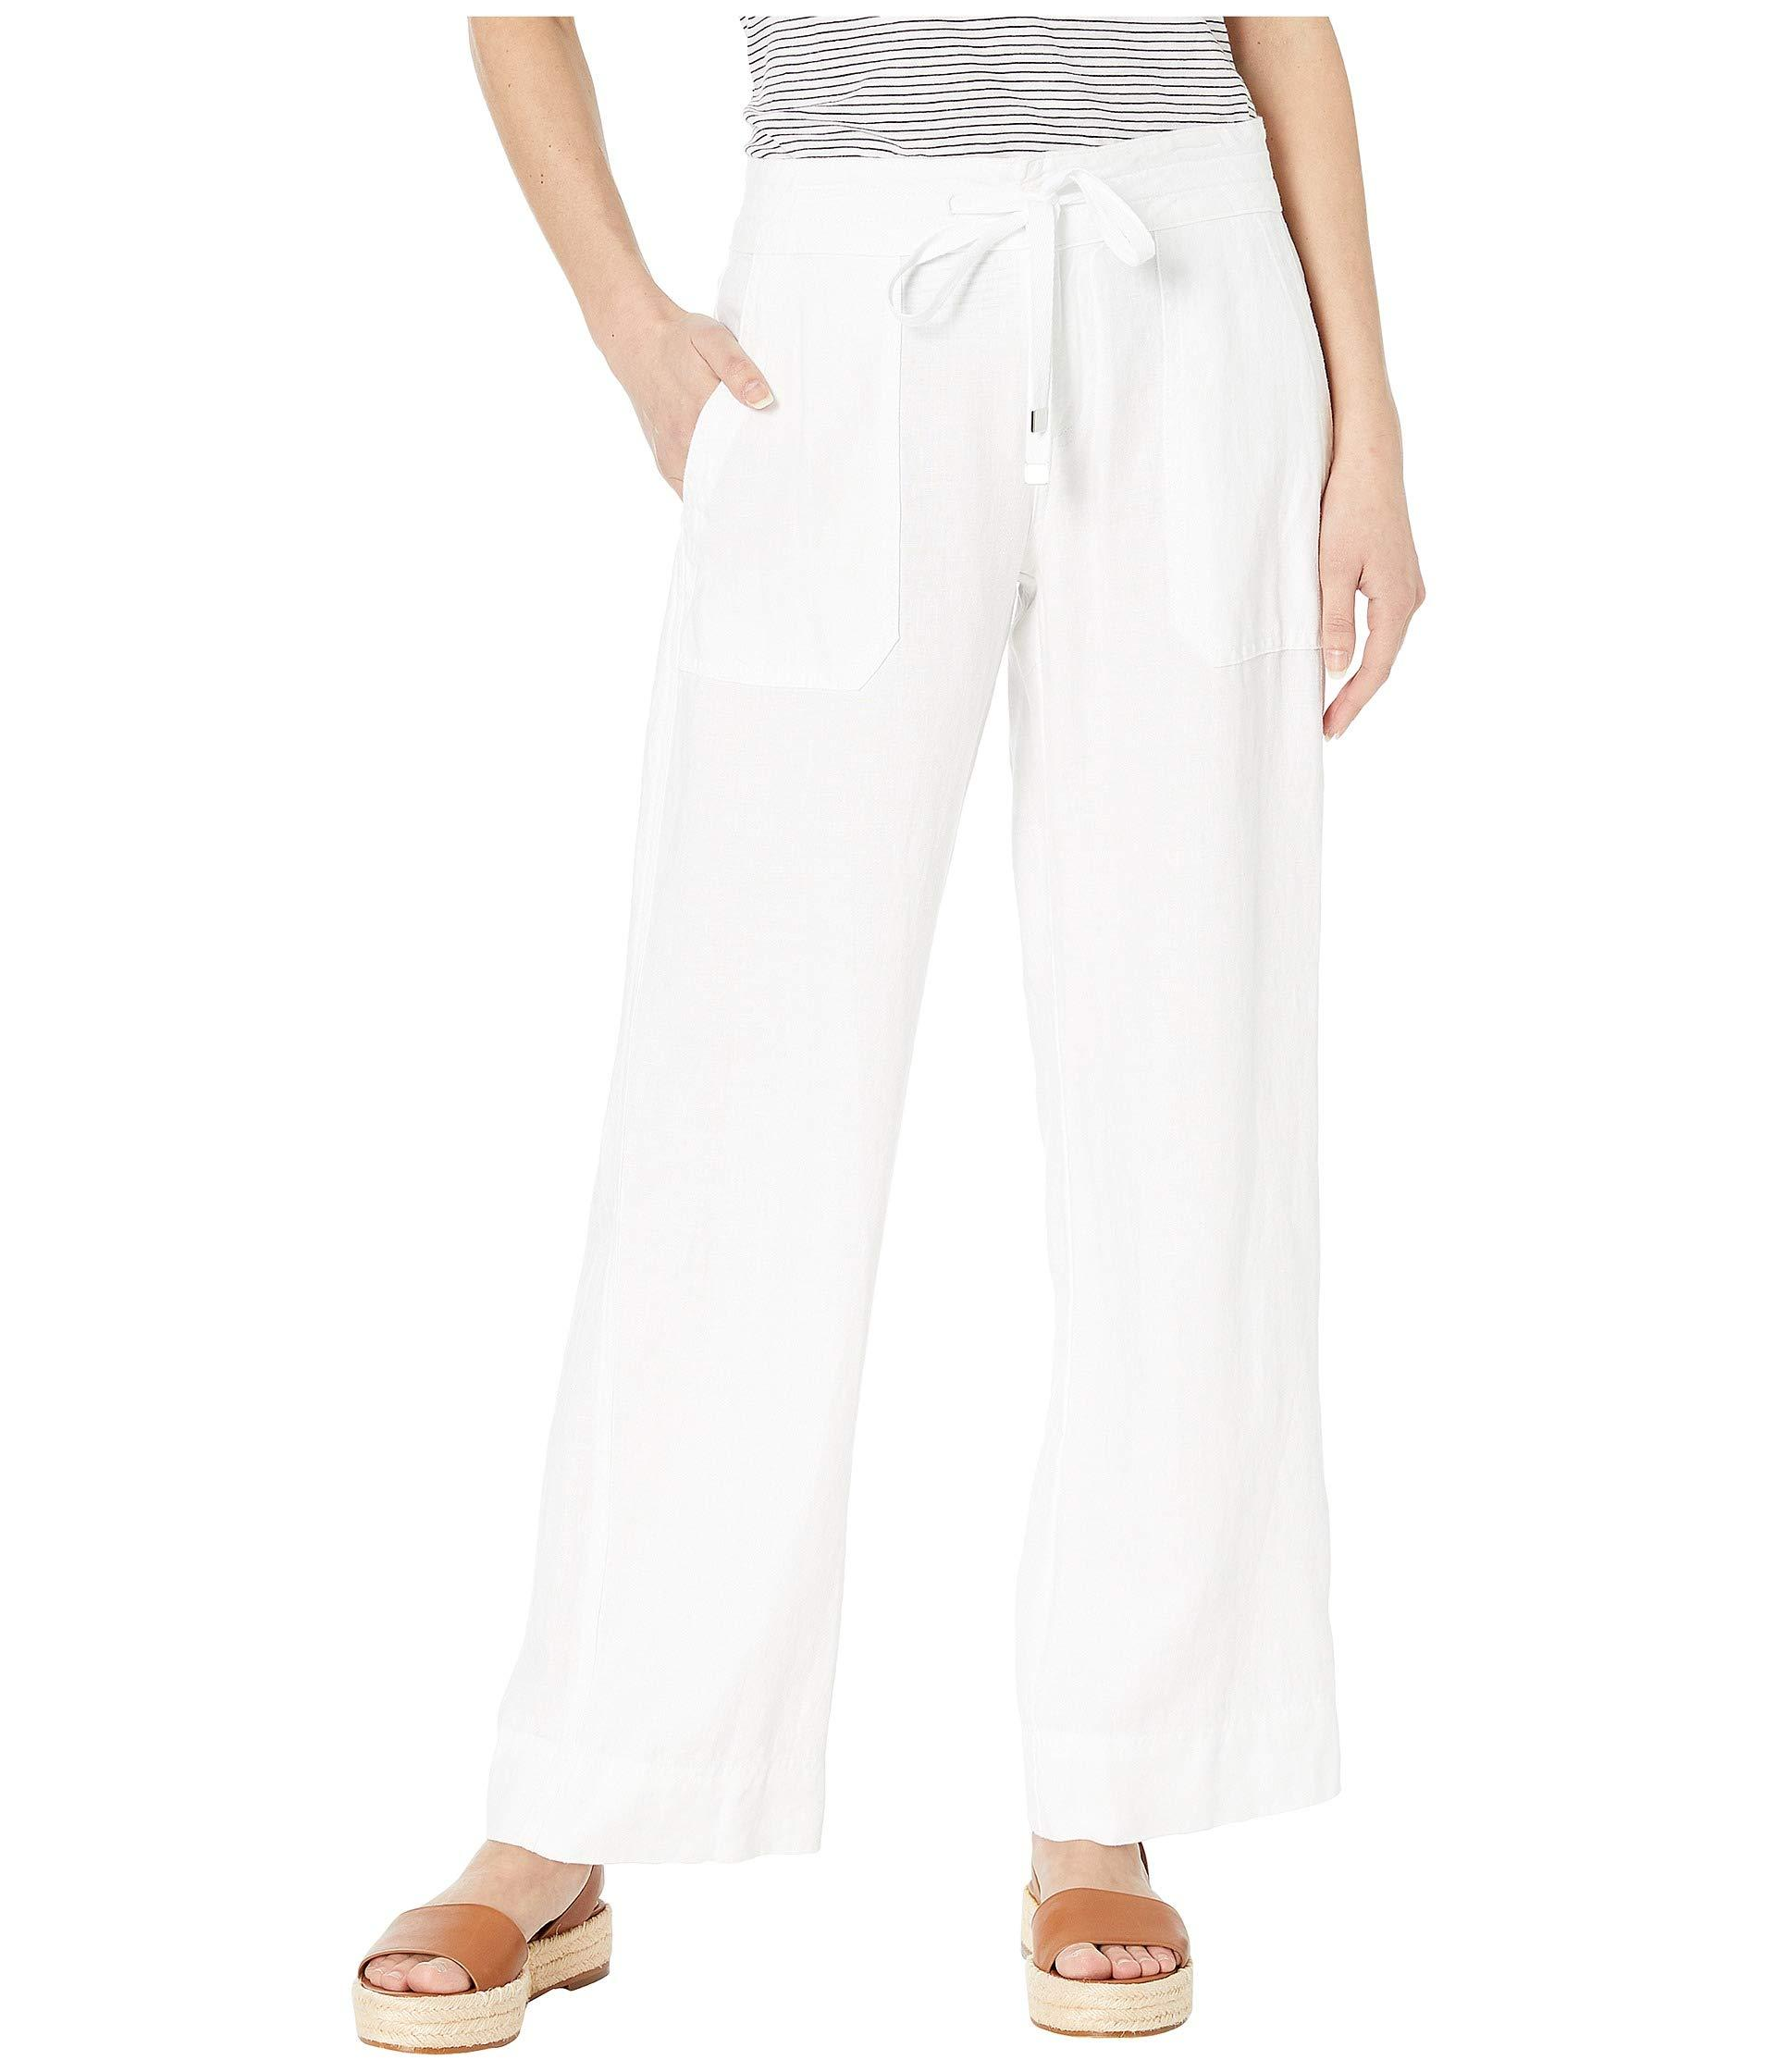 cfa3ebdd7 Lauren by Ralph Lauren. Petite Linen Wide-leg Pants (white) Women's ...